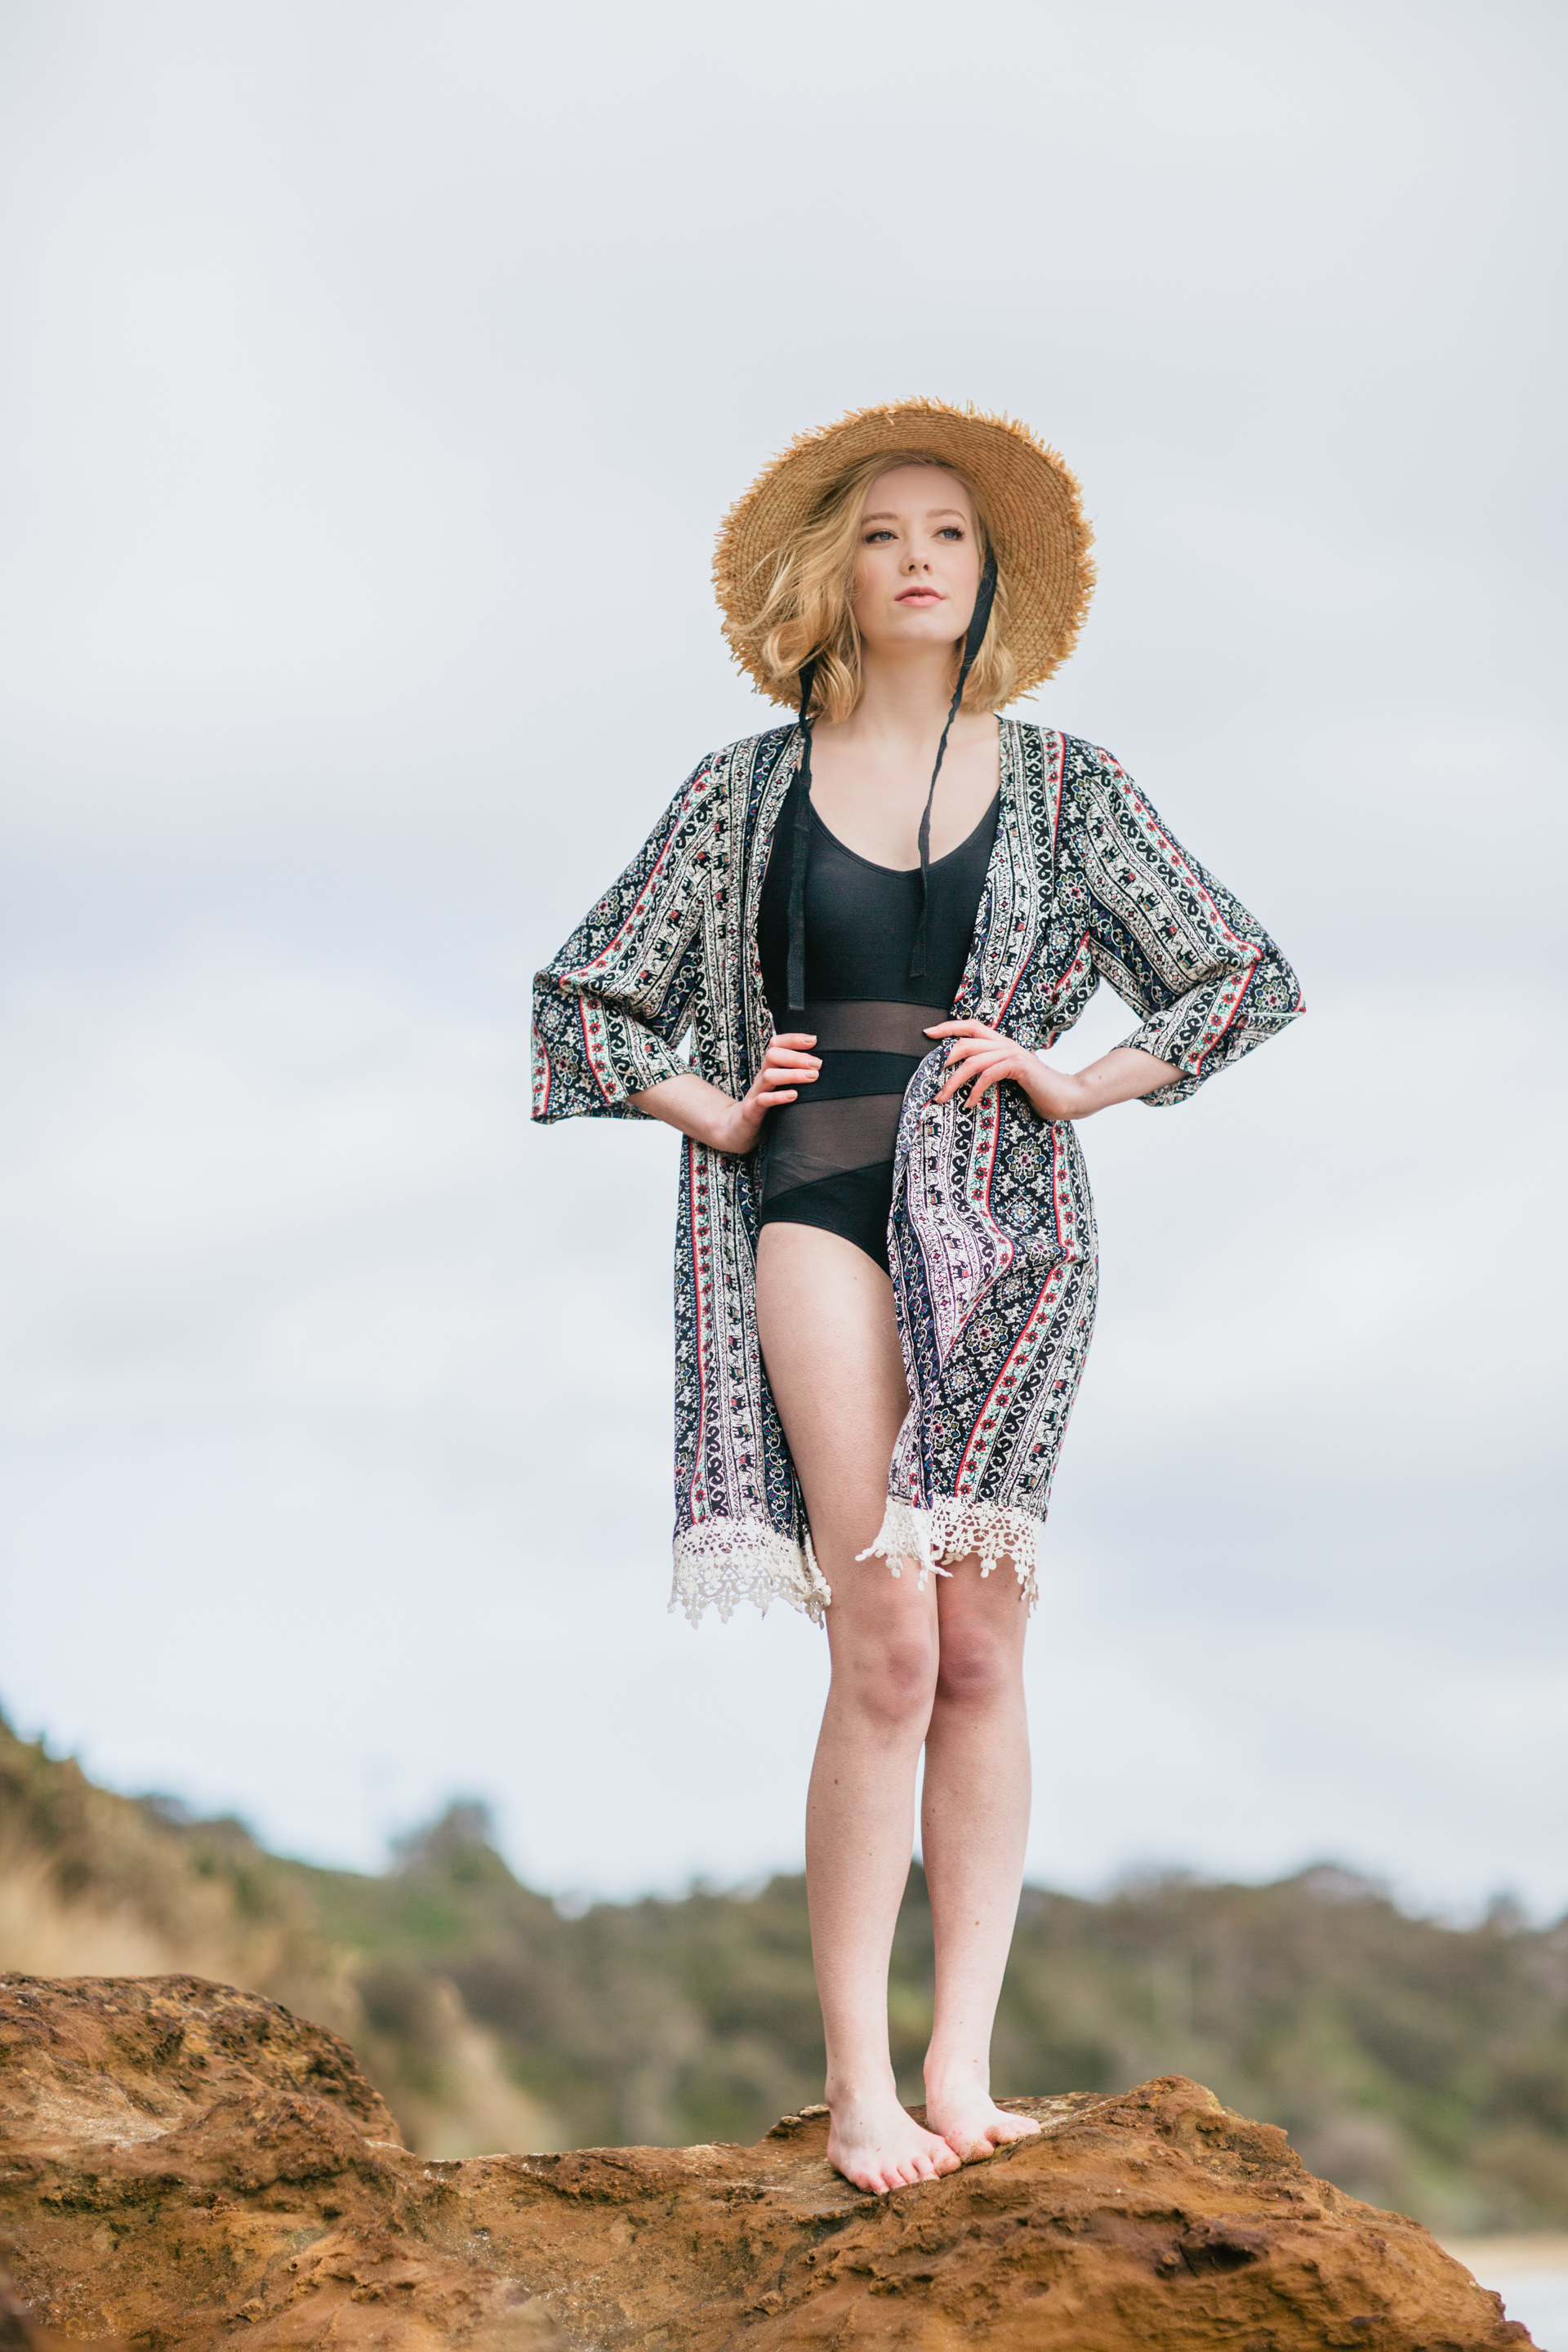 beach photography - photoshoot in melbourne by commercial photographer Souri